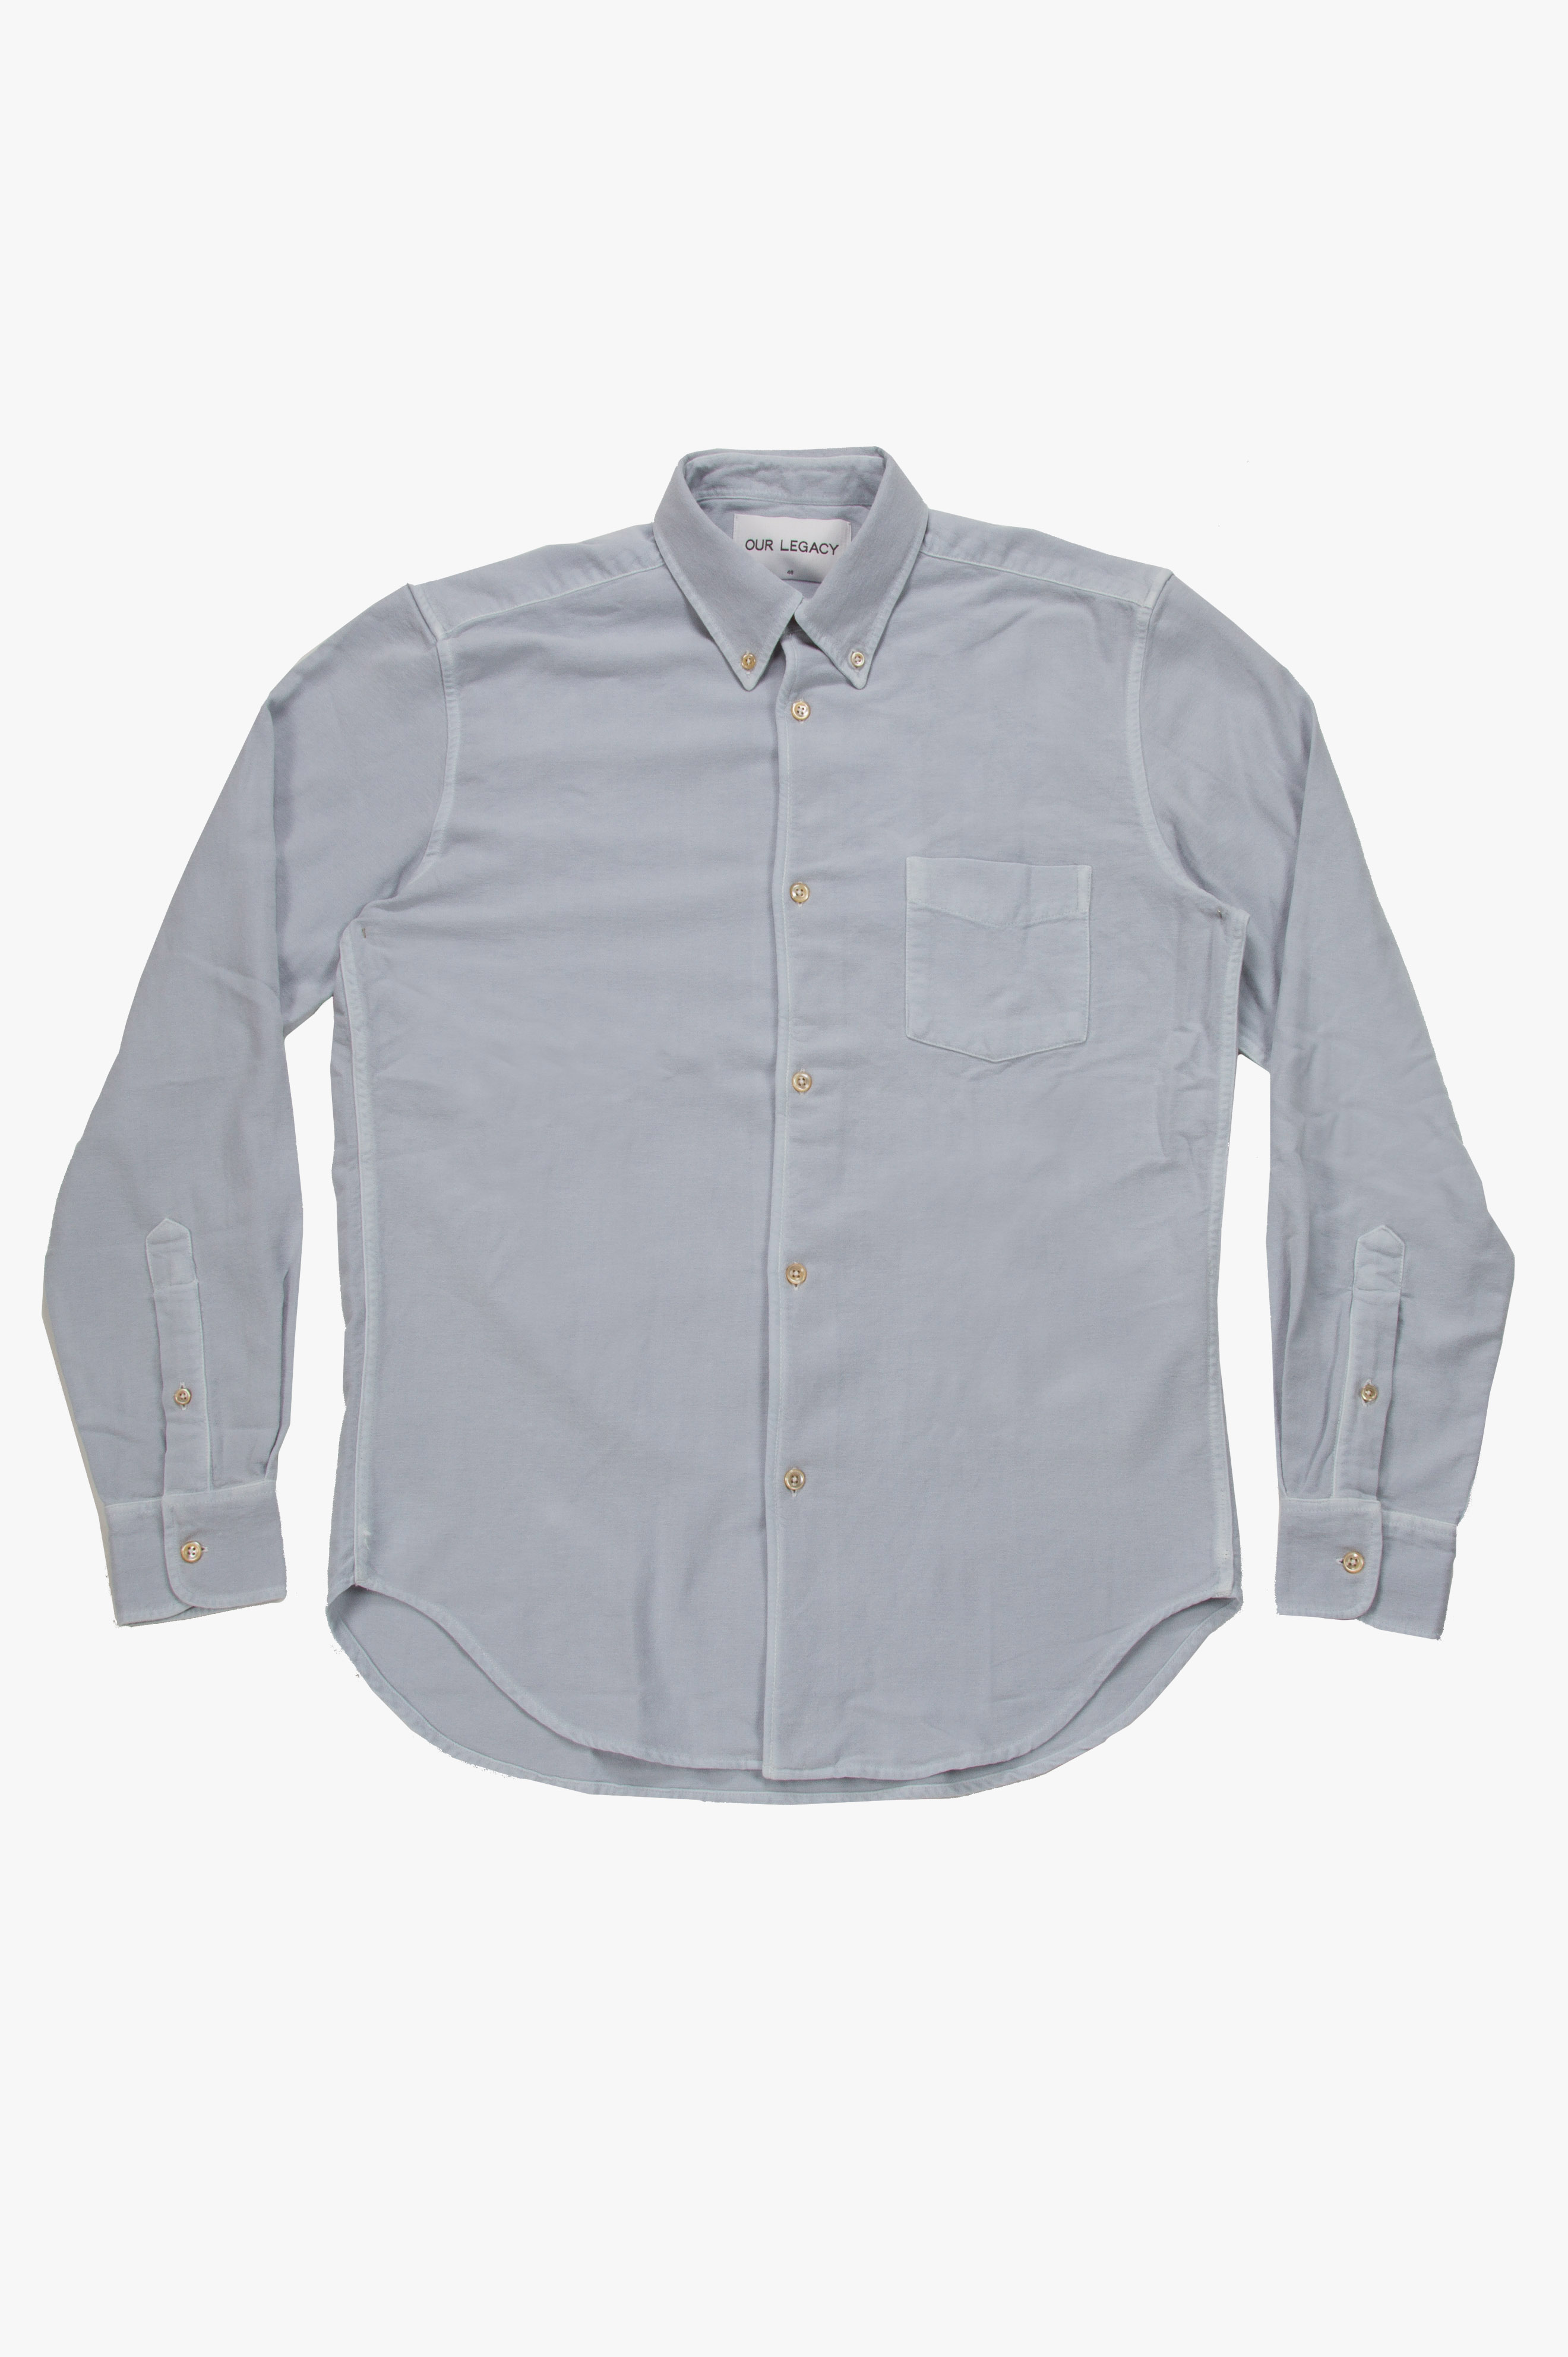 1950's Shirt Snowgrey Ultimate Flannel